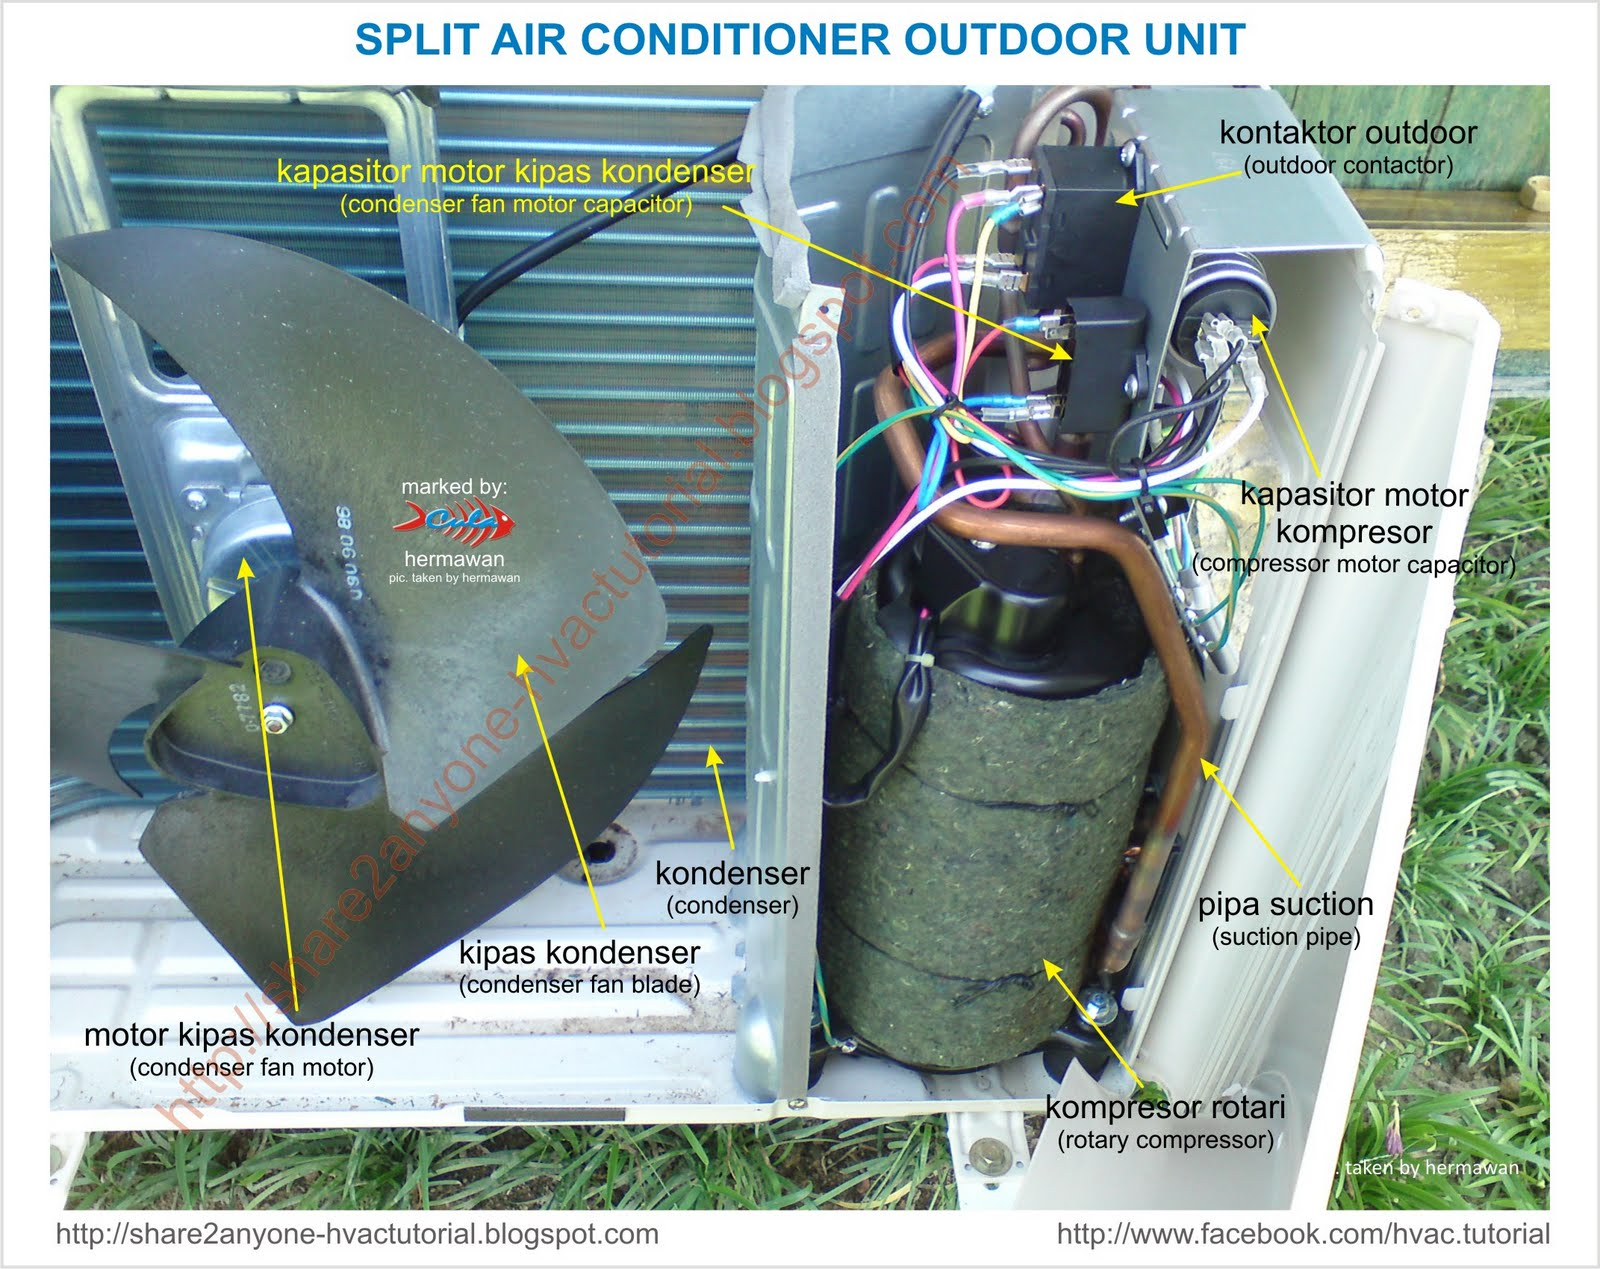 Share2Anyone HVAC Tutorial: Split Air Conditioner #477684